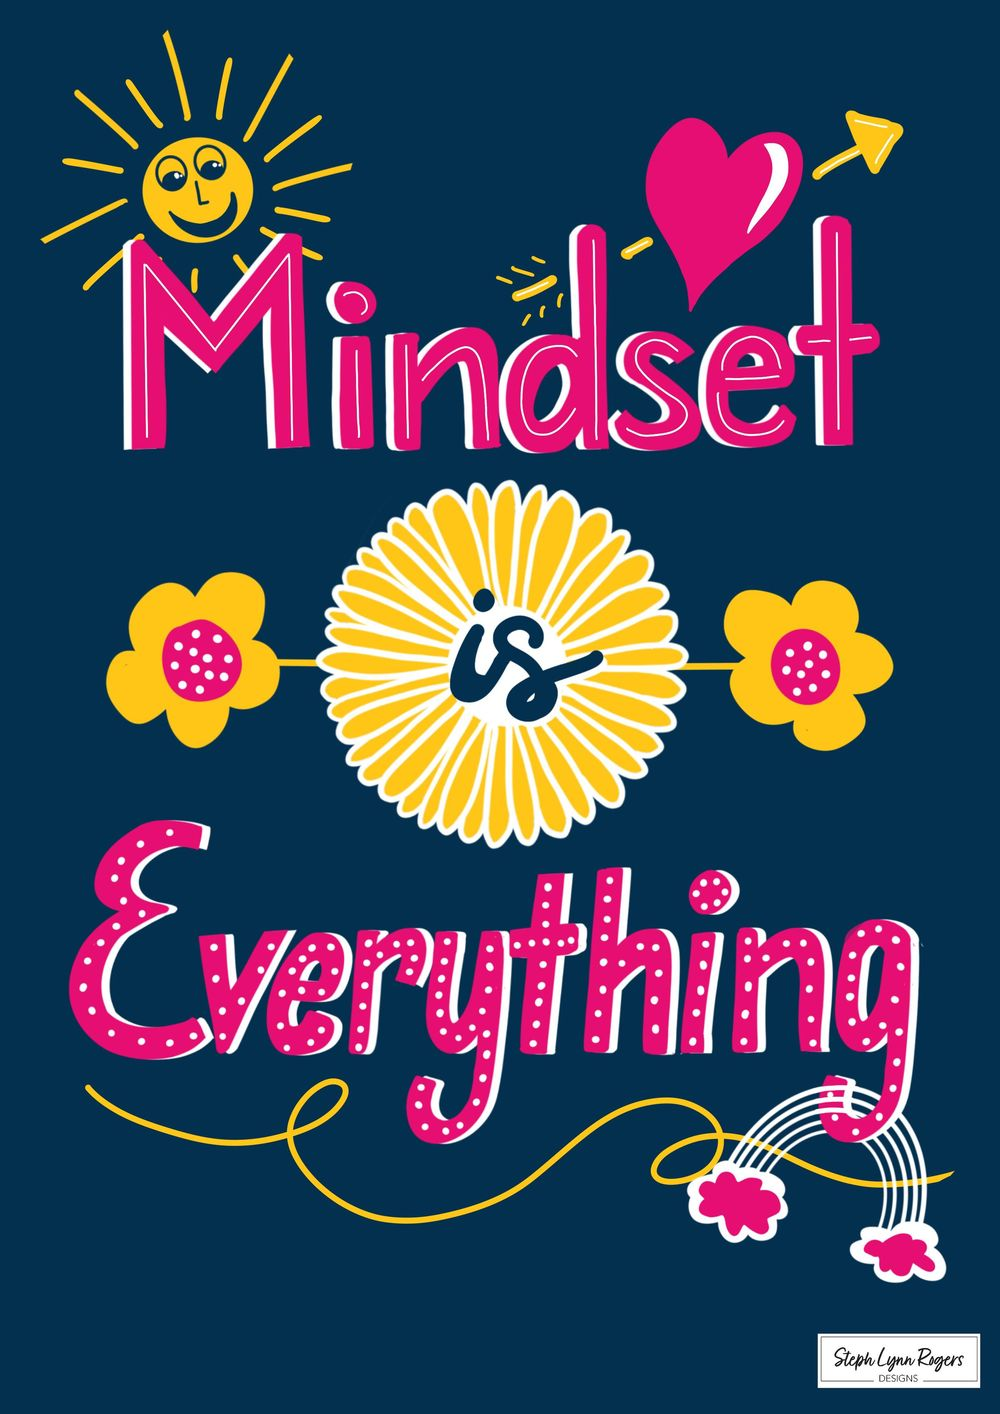 Mindset is Everything! - image 1 - student project